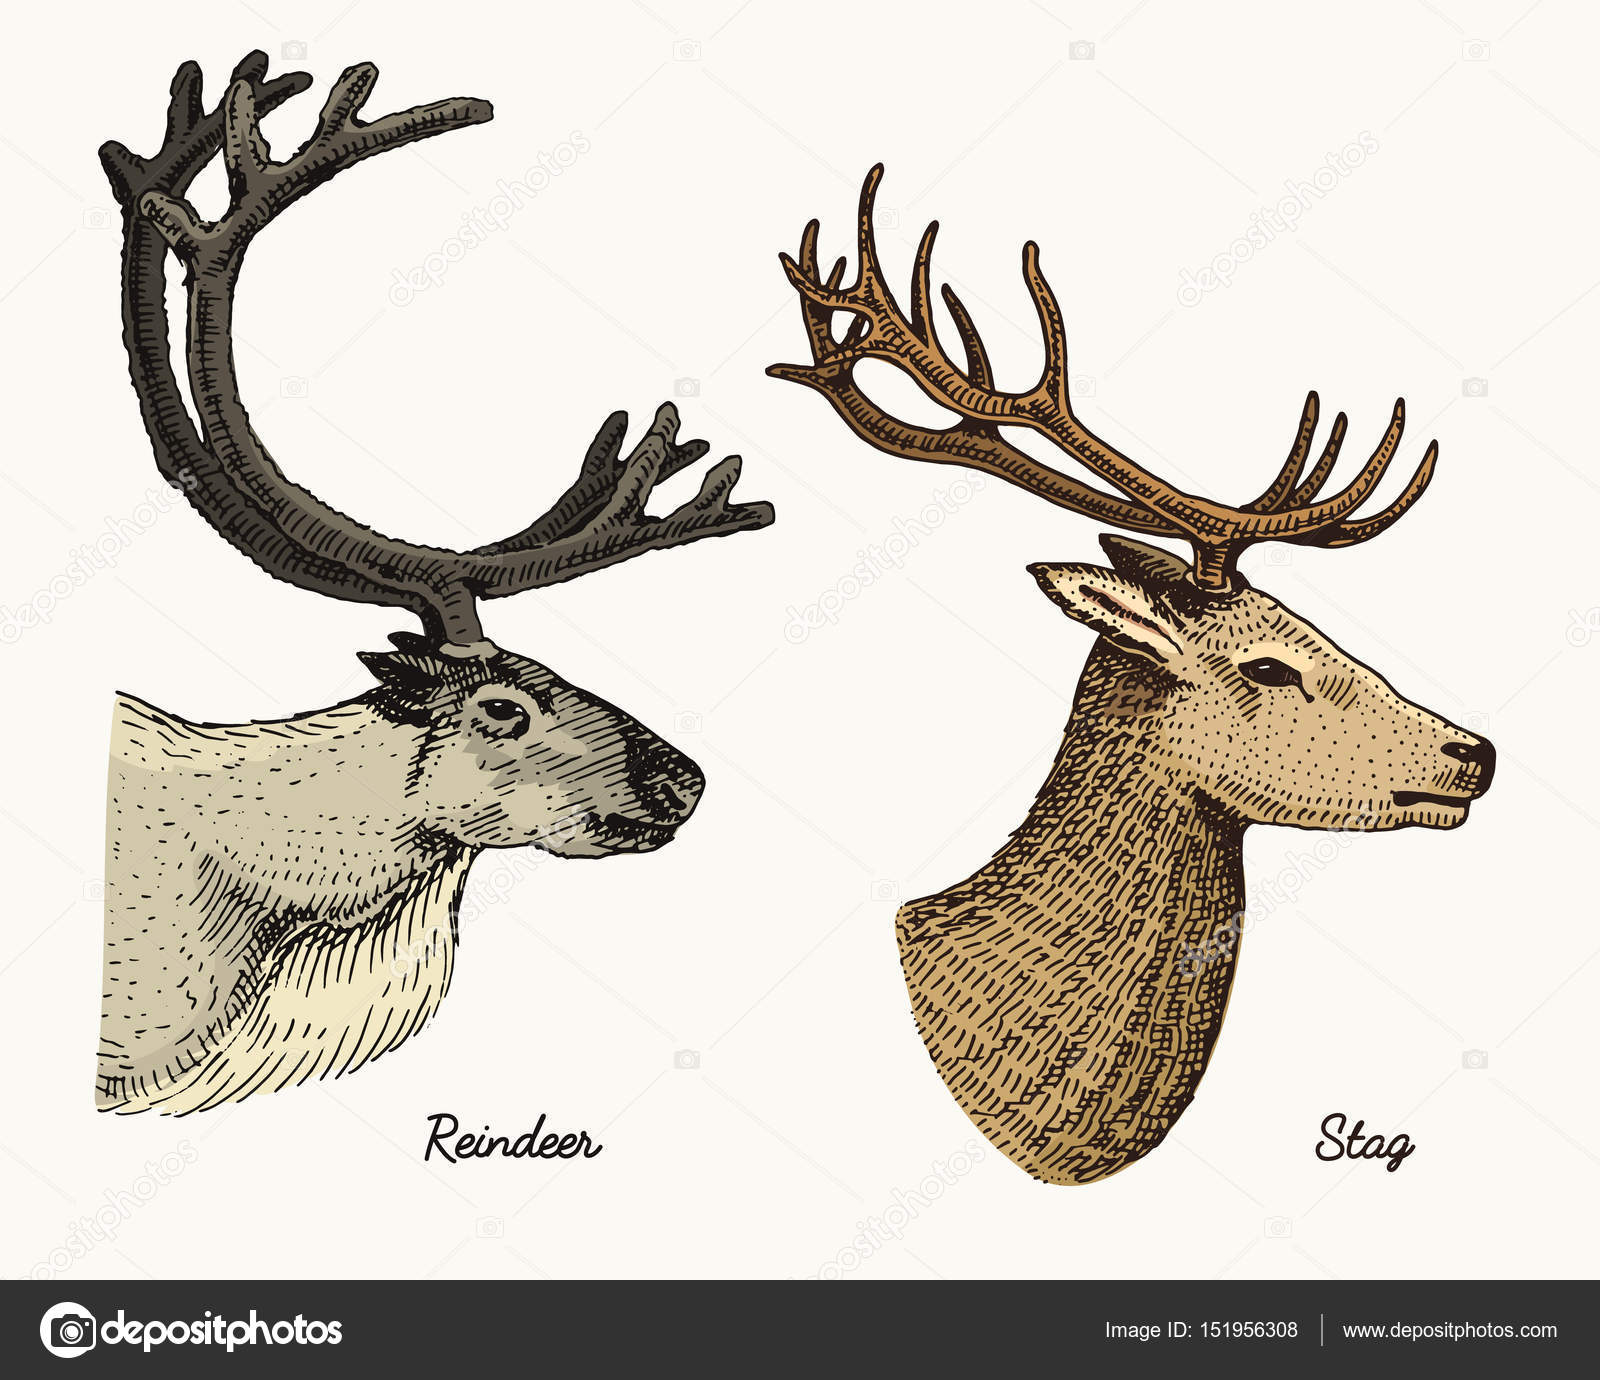 1600x1380 Reindeer And Stag Deer Vector Hand Drawn Illustration, Engraved